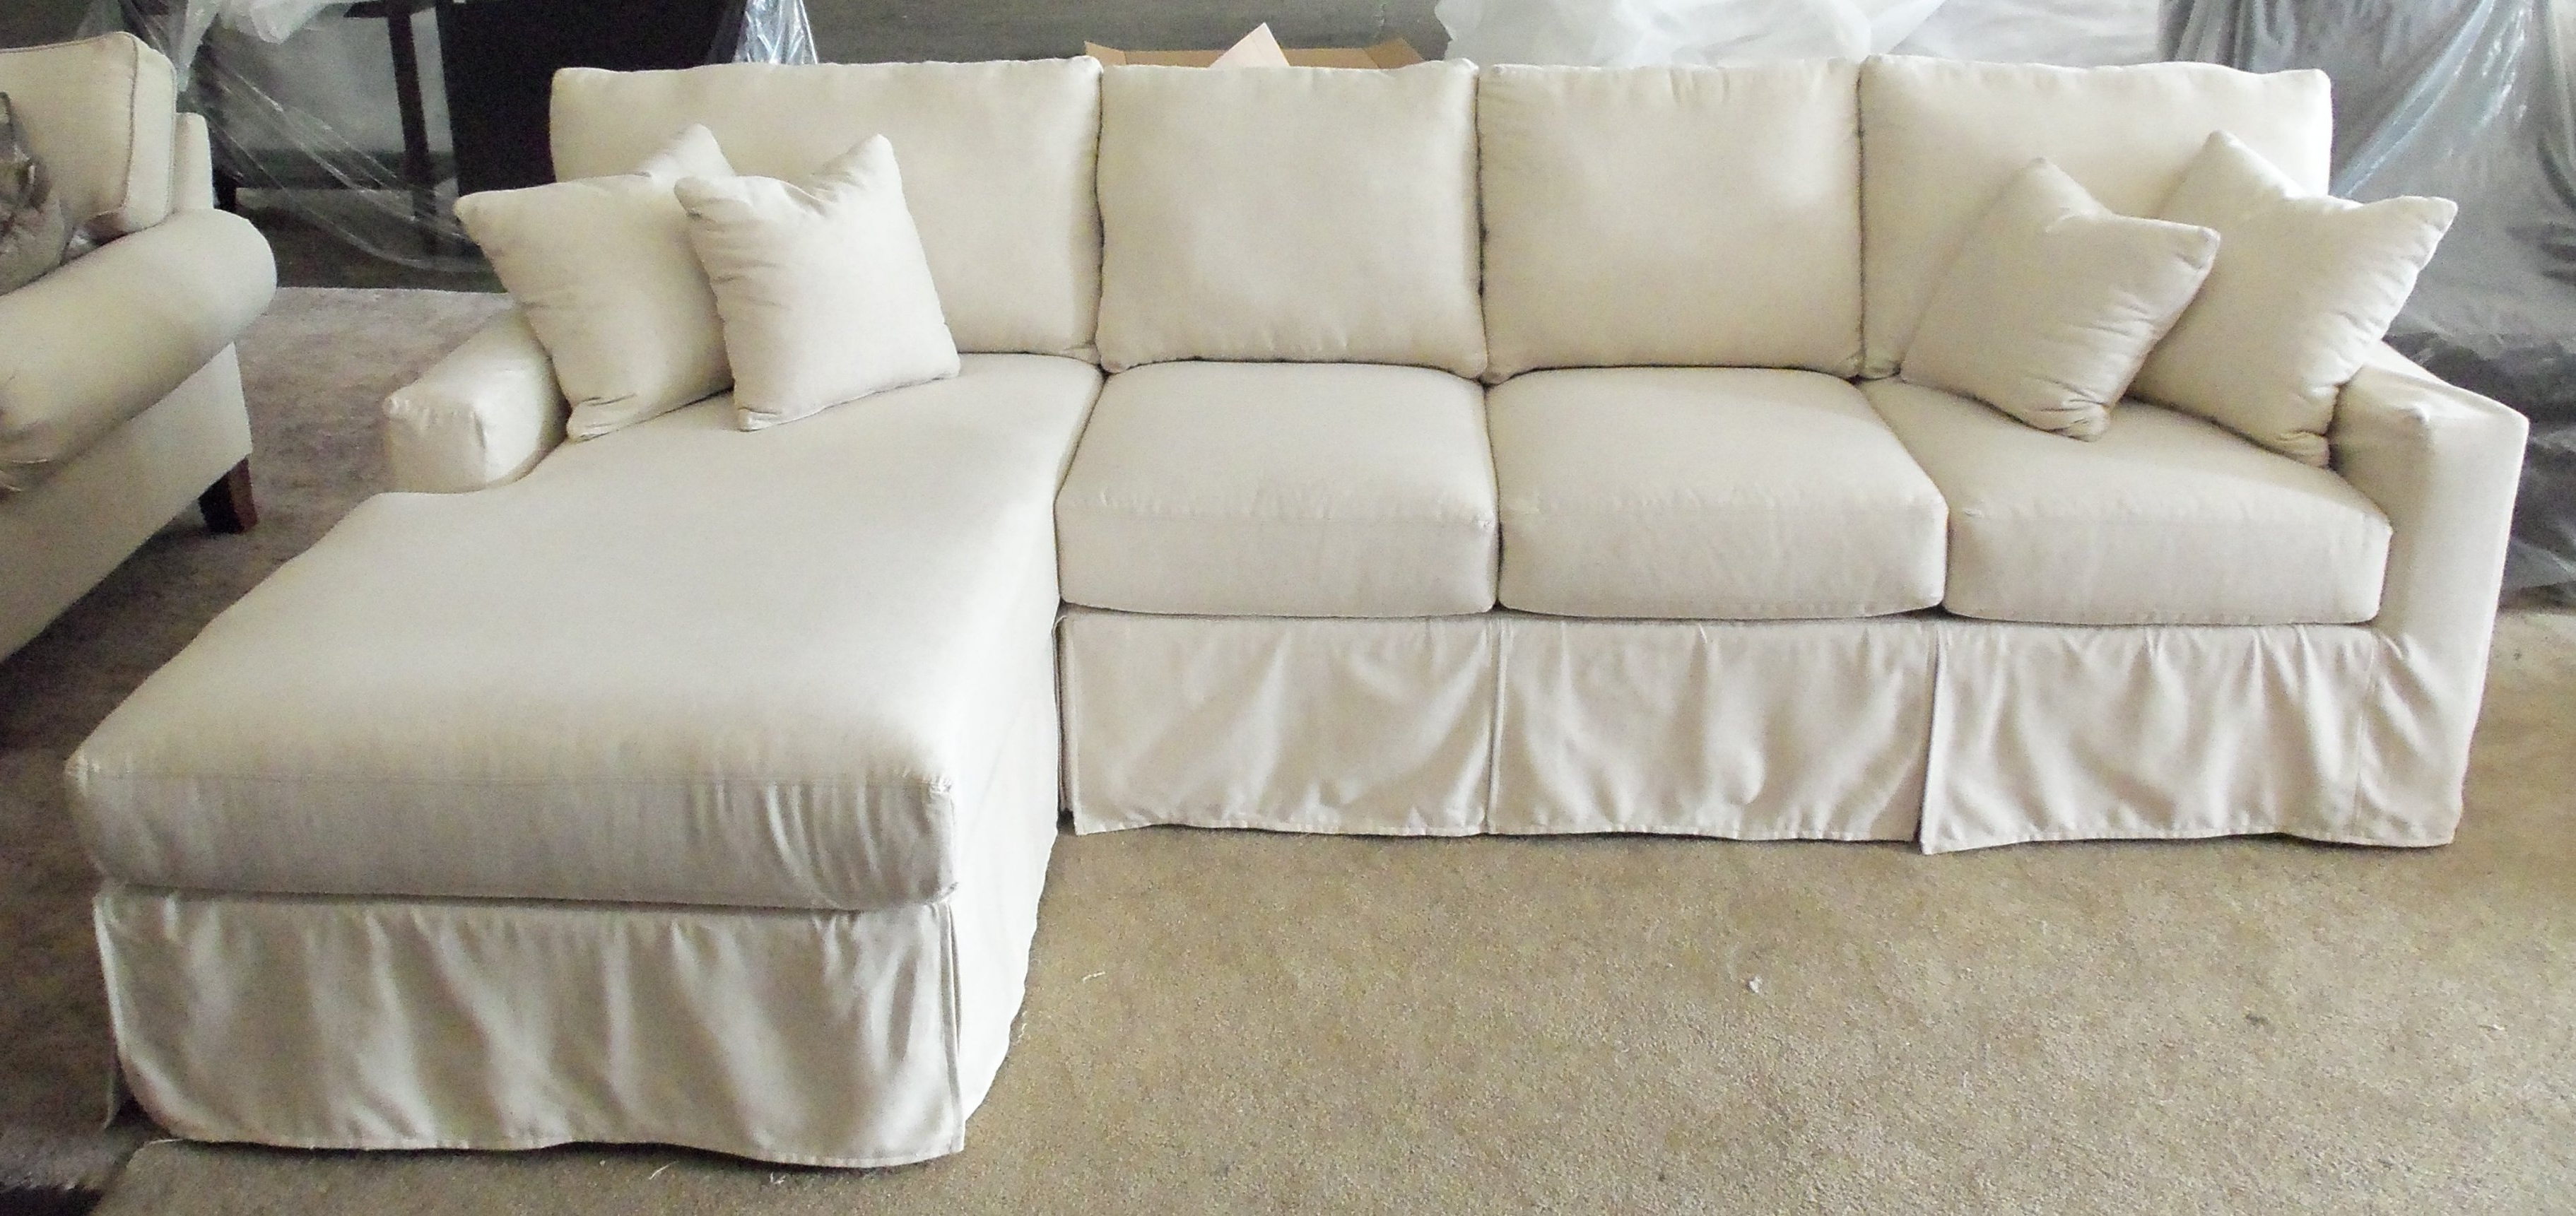 Well Known Sectional Sofa With Microfiber Chaise Together Loveseat In Throughout Chaise Slipcovers (View 4 of 15)